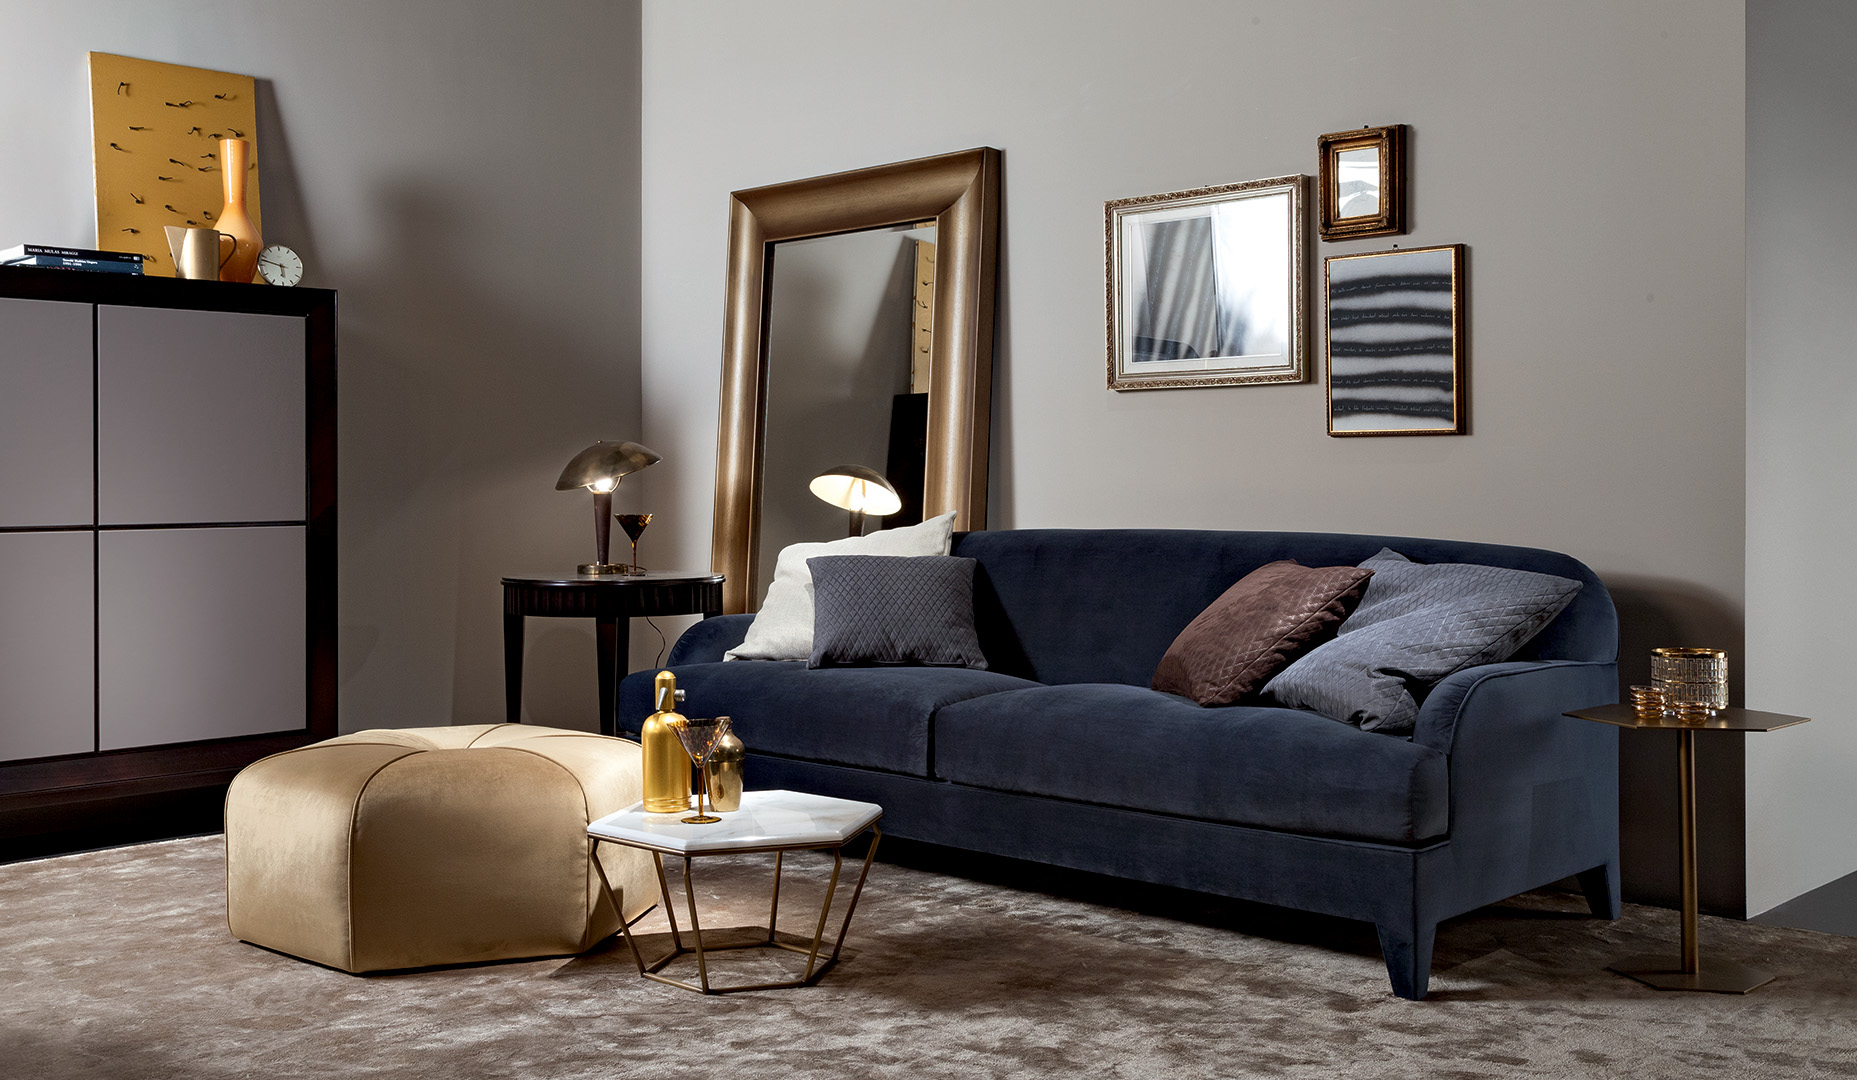 Fabric upholstered st germain sofa dreams line design for Albany st germain sectional sofa chaise